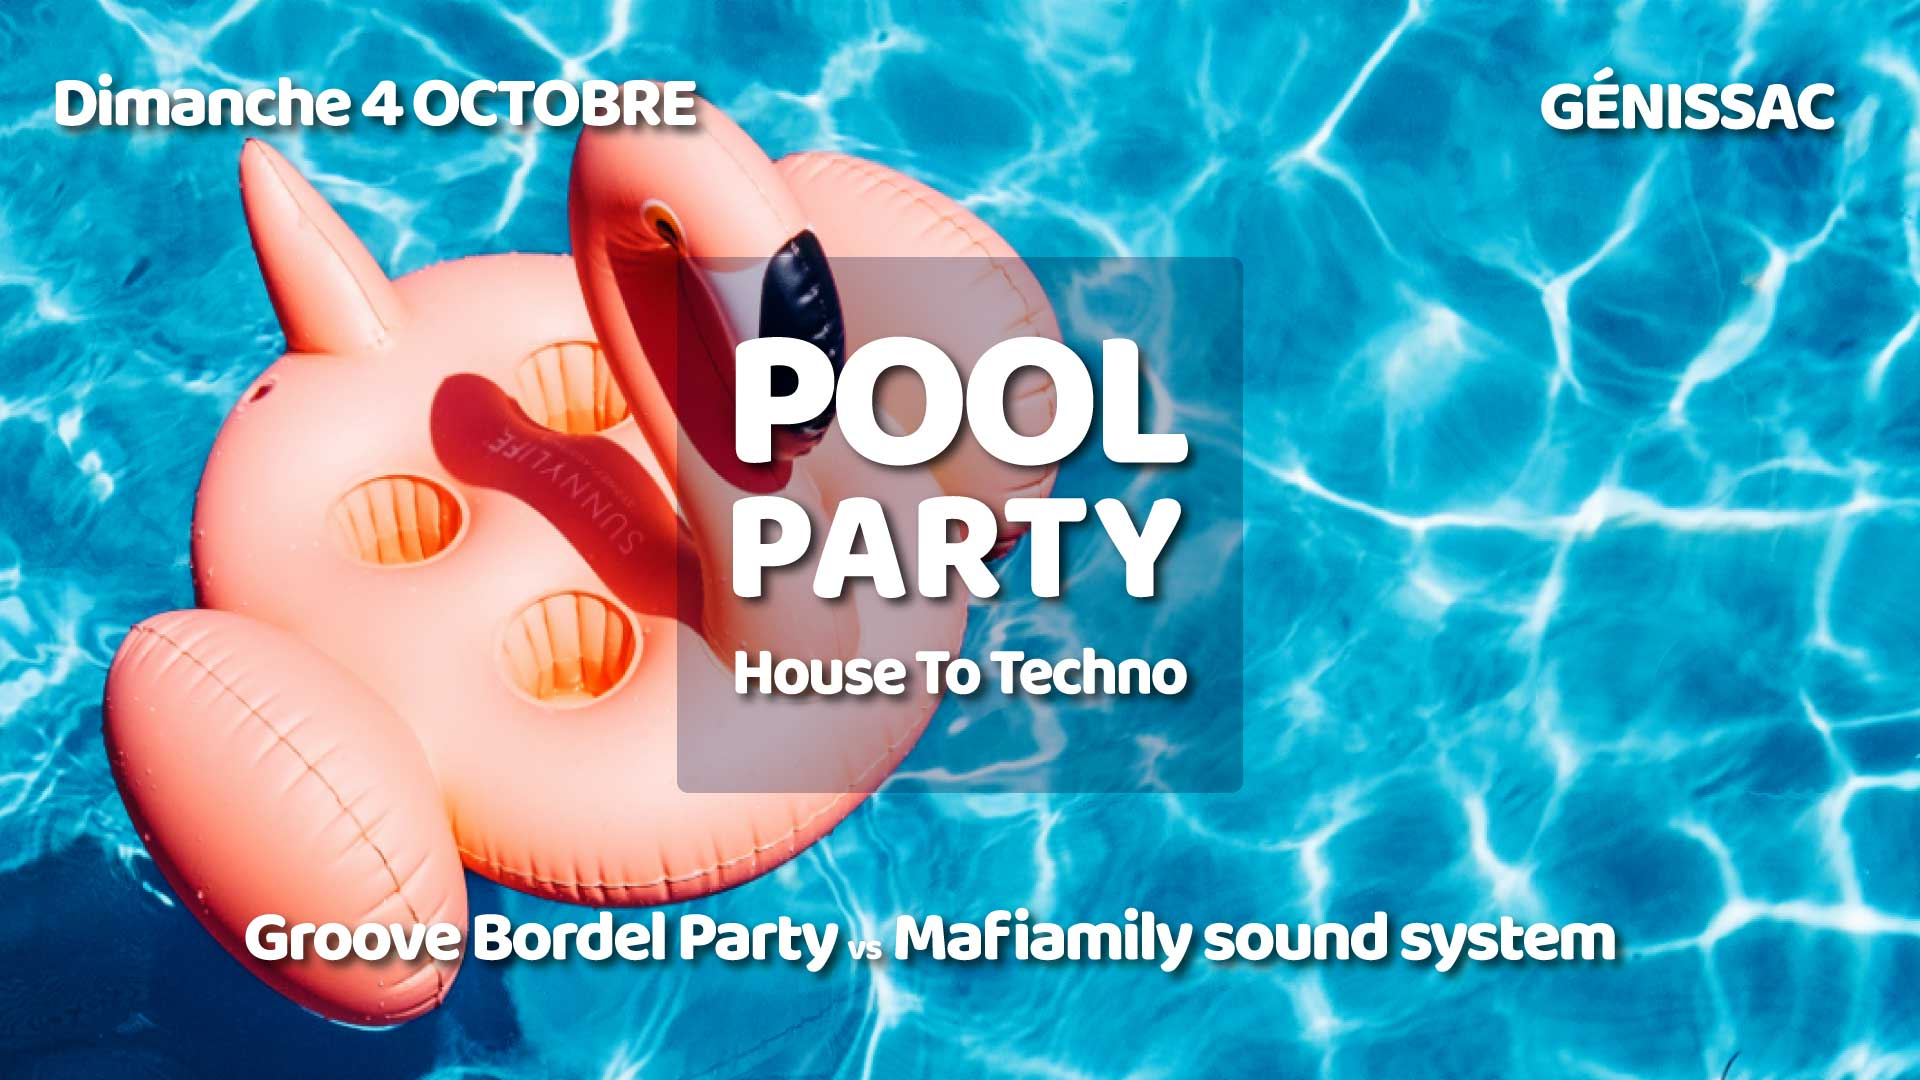 https://the-place-to-be.fr/wp-content/uploads/2020/09/pool-party-groove-bordel-party-genissac-2020.jpg